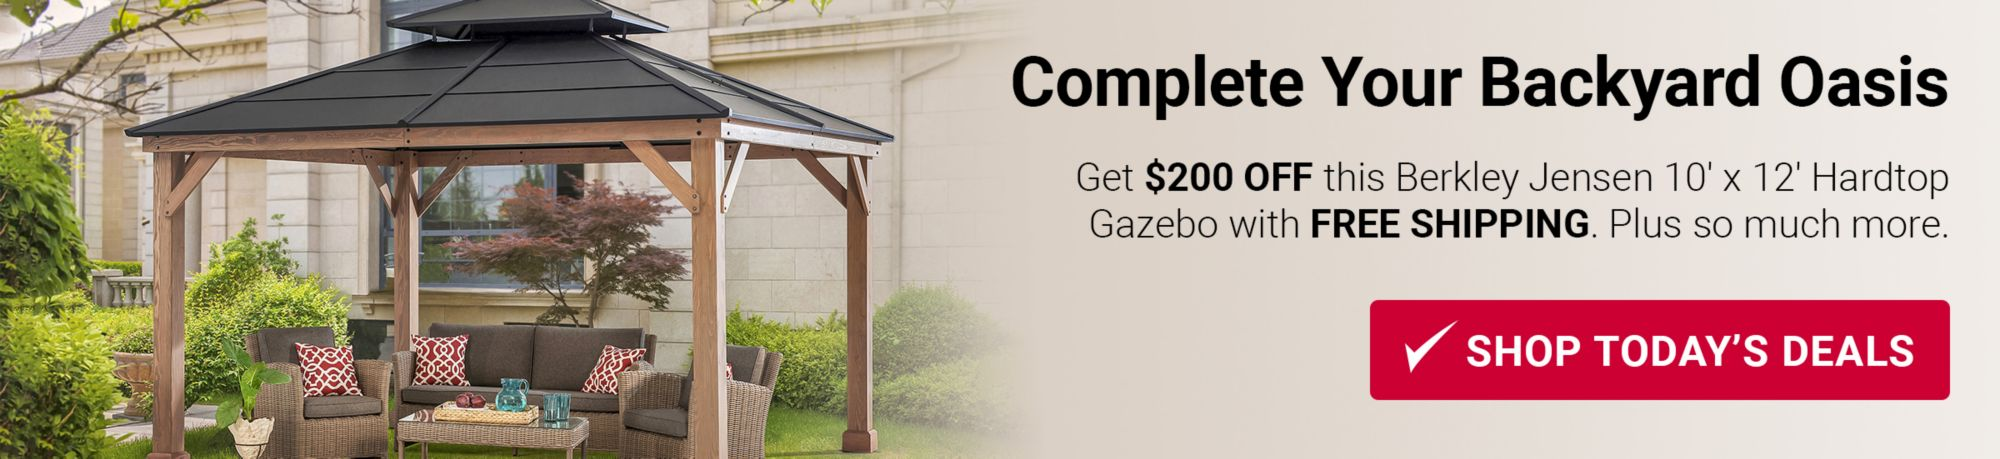 Complete Your Backyard Oasis. Get $200 OFF this Berkley Jensen 10 foot by 12 foot Hardtop Gazebo with FREE SHIPPING. Plus so much more. Click here to shop today's deals.